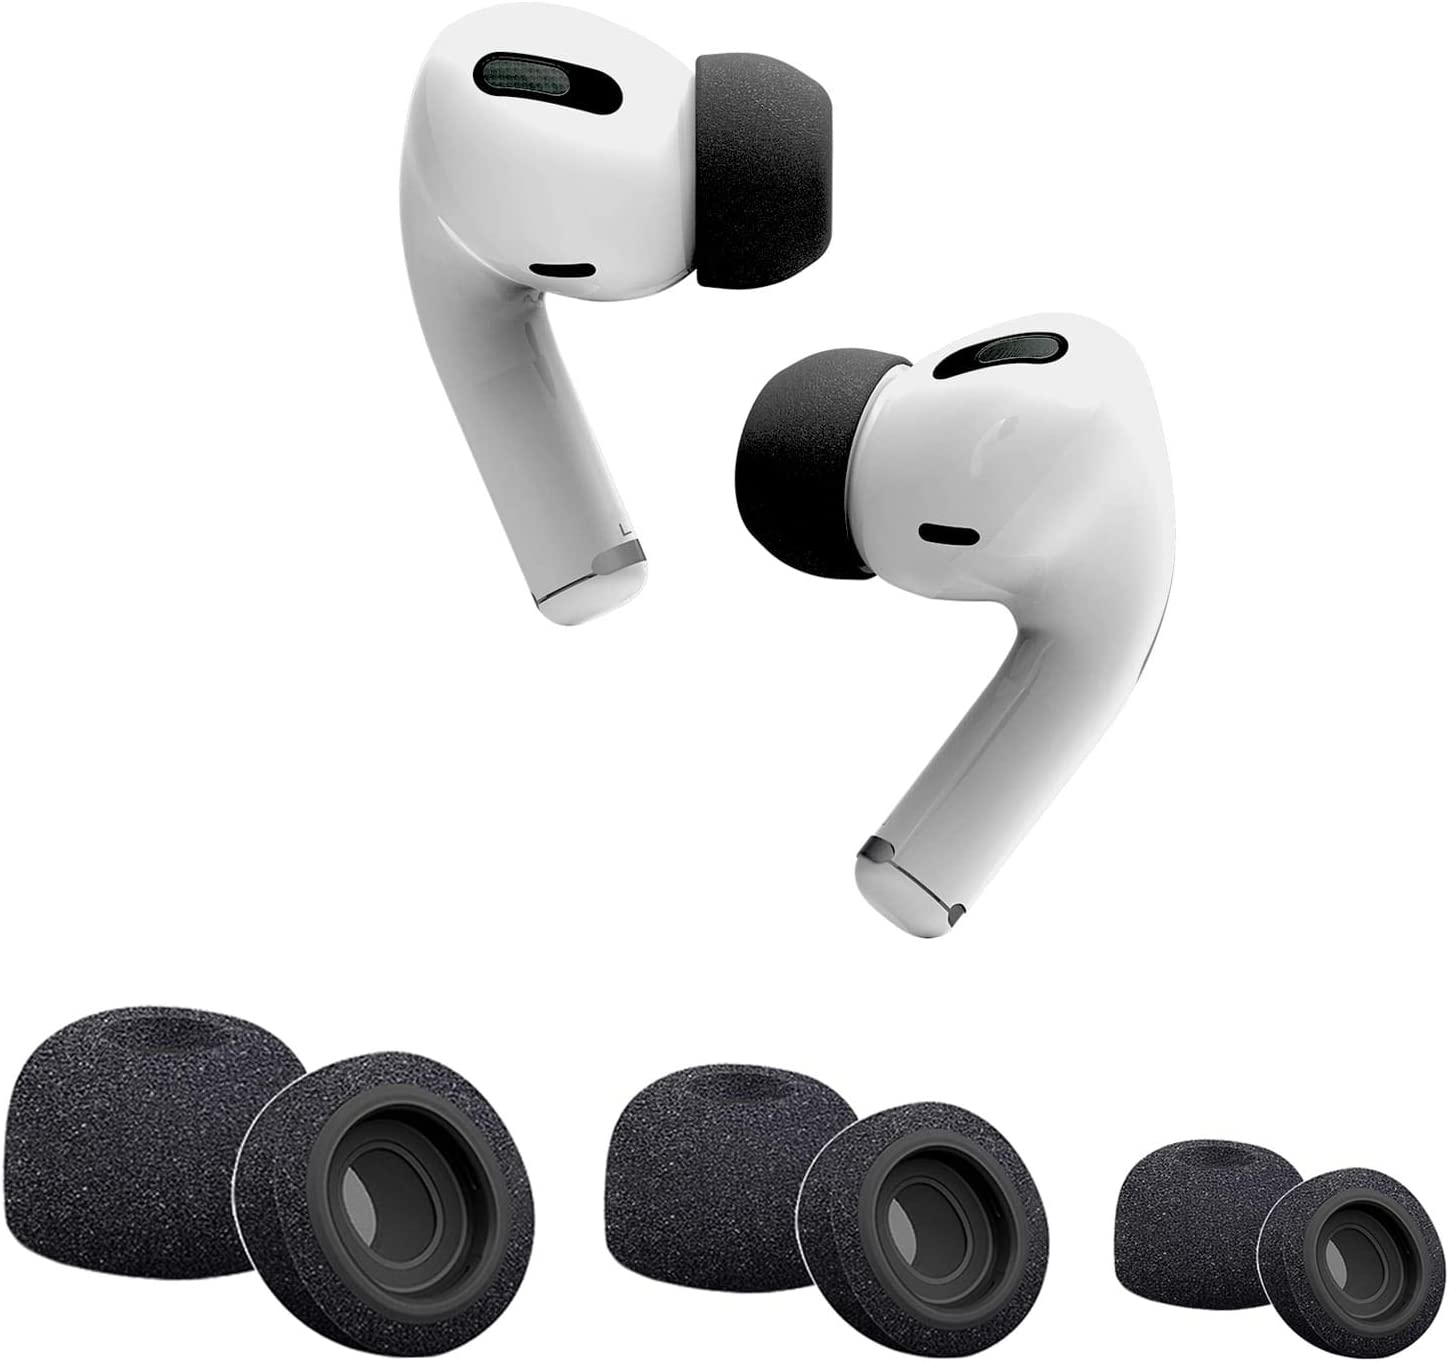 Diy Mod I Added Memory Foam Tips To My Airpods Pro To Improve Their Seal And Help With Noise Cancellation And Bass Response Headphones